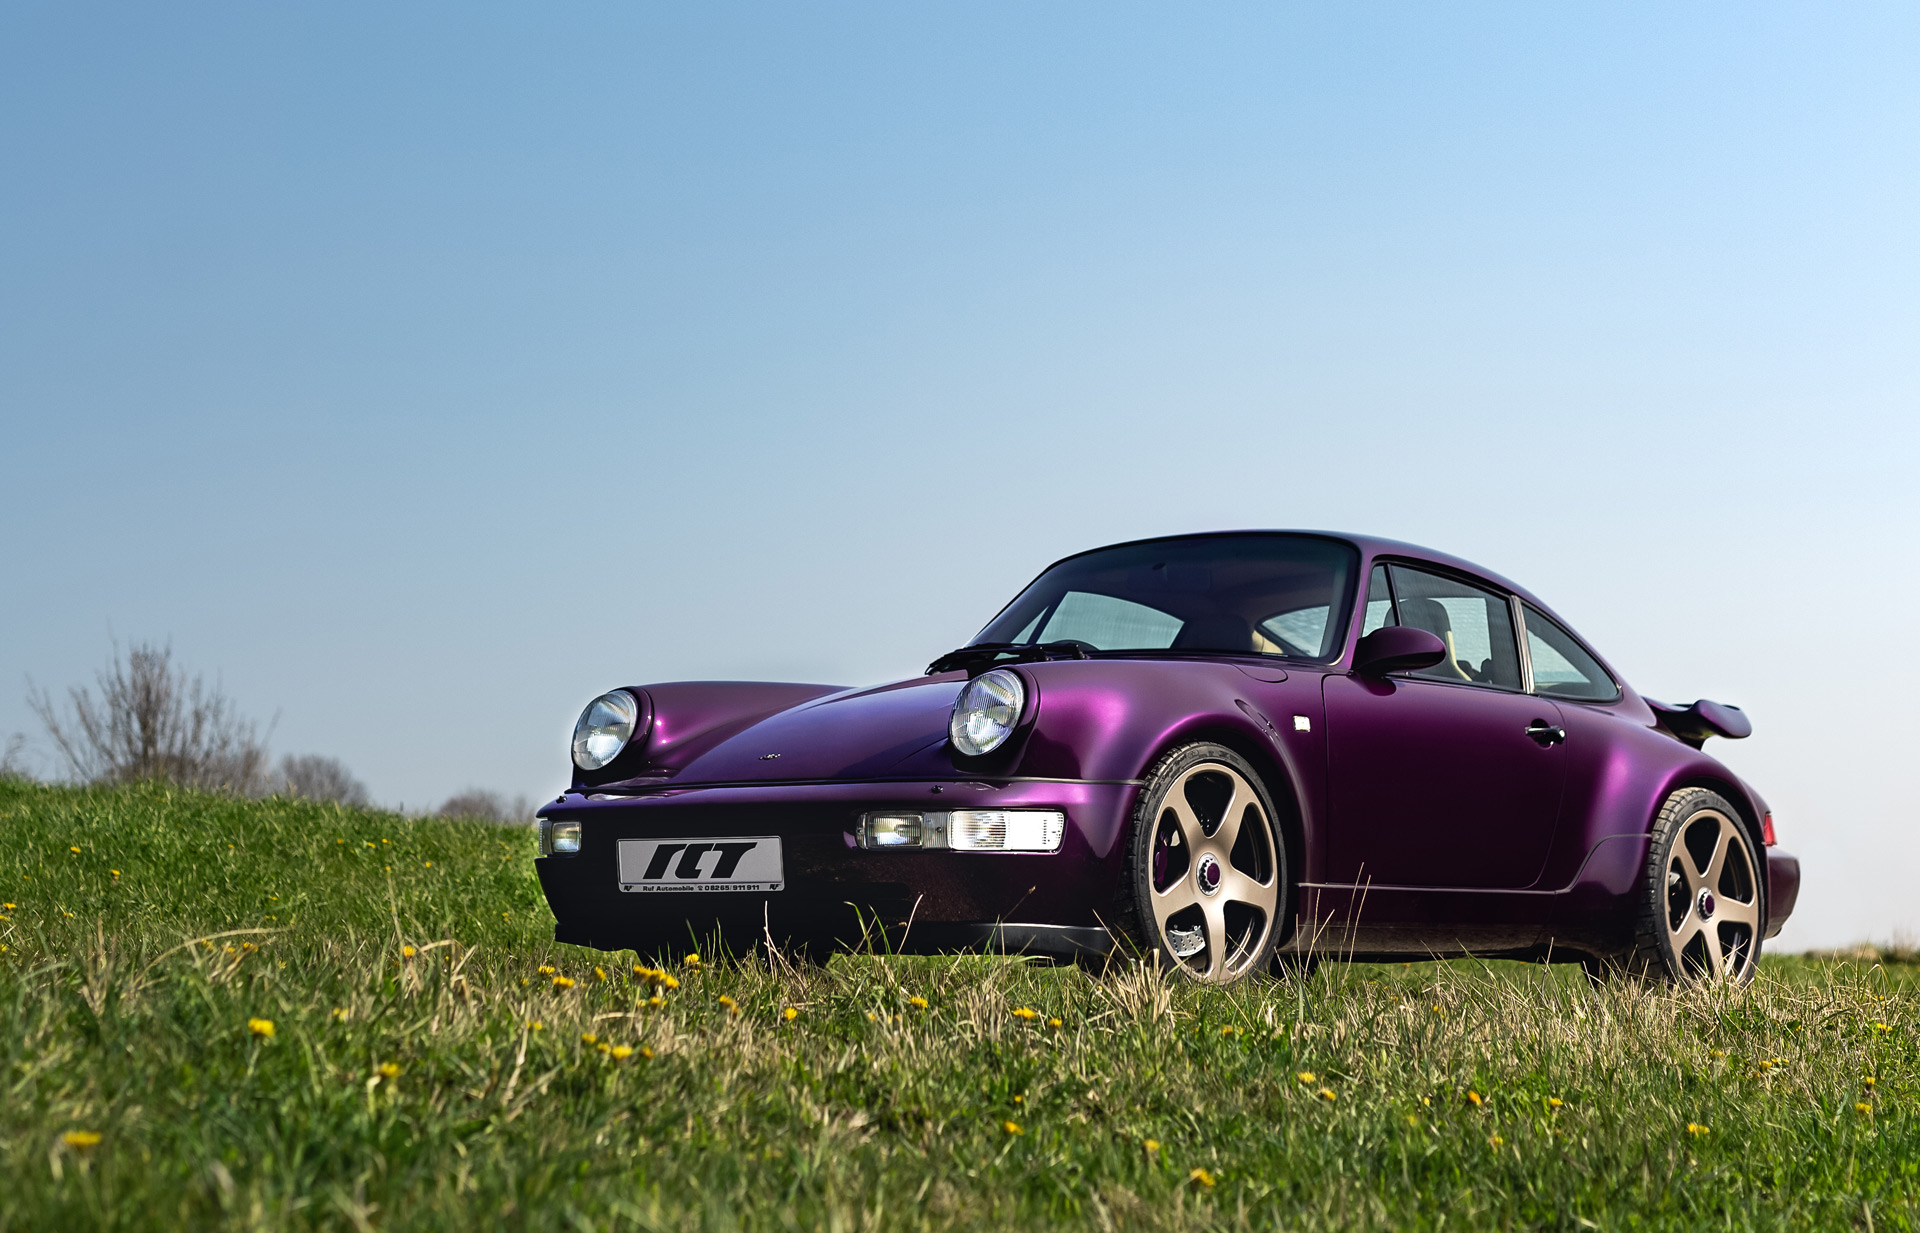 The Ruf RCT of the 1990s is back as a modern restomod